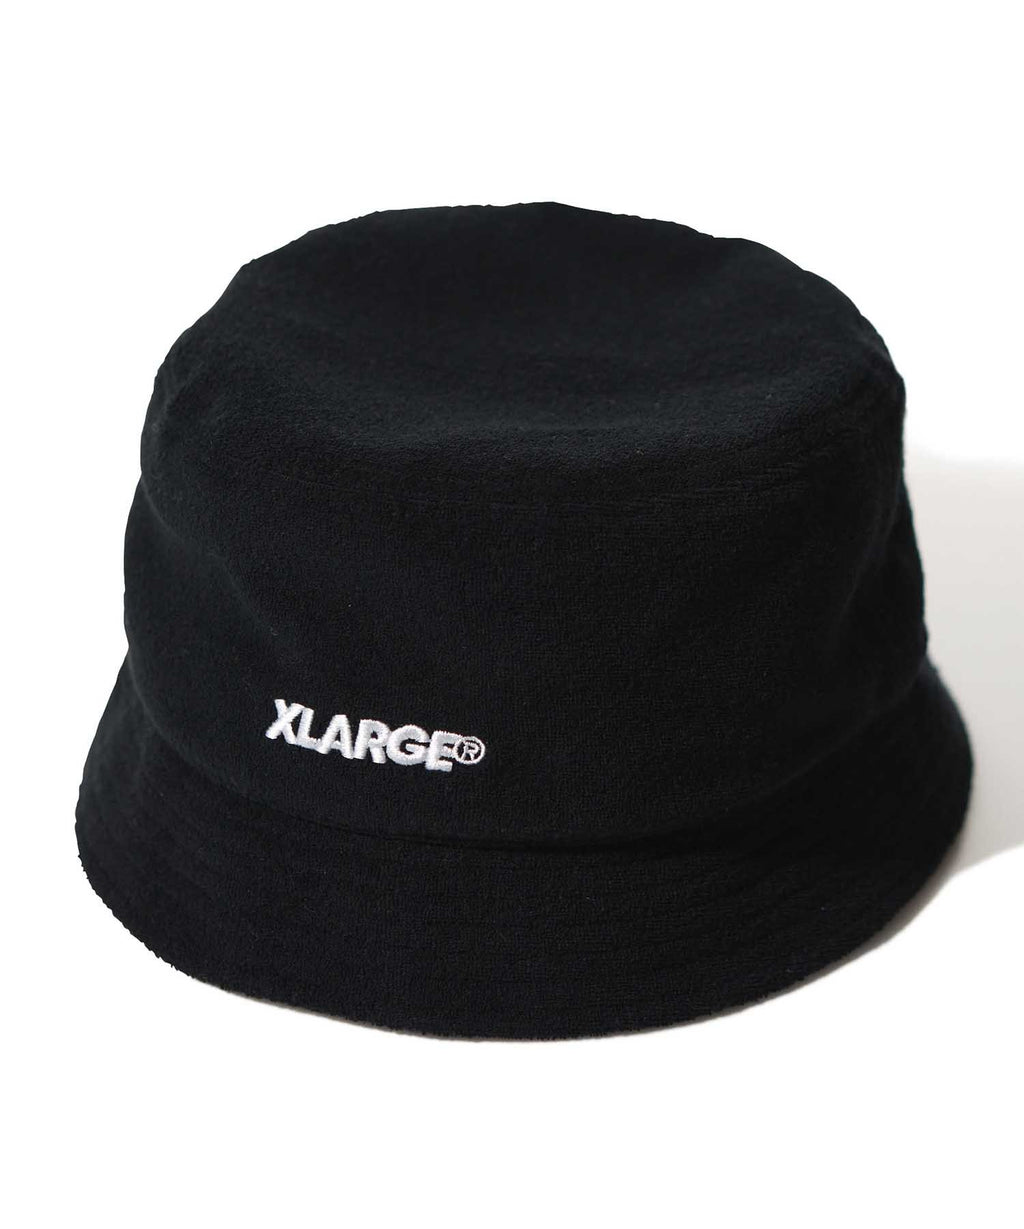 PILE BUCKET HAT - BLACK